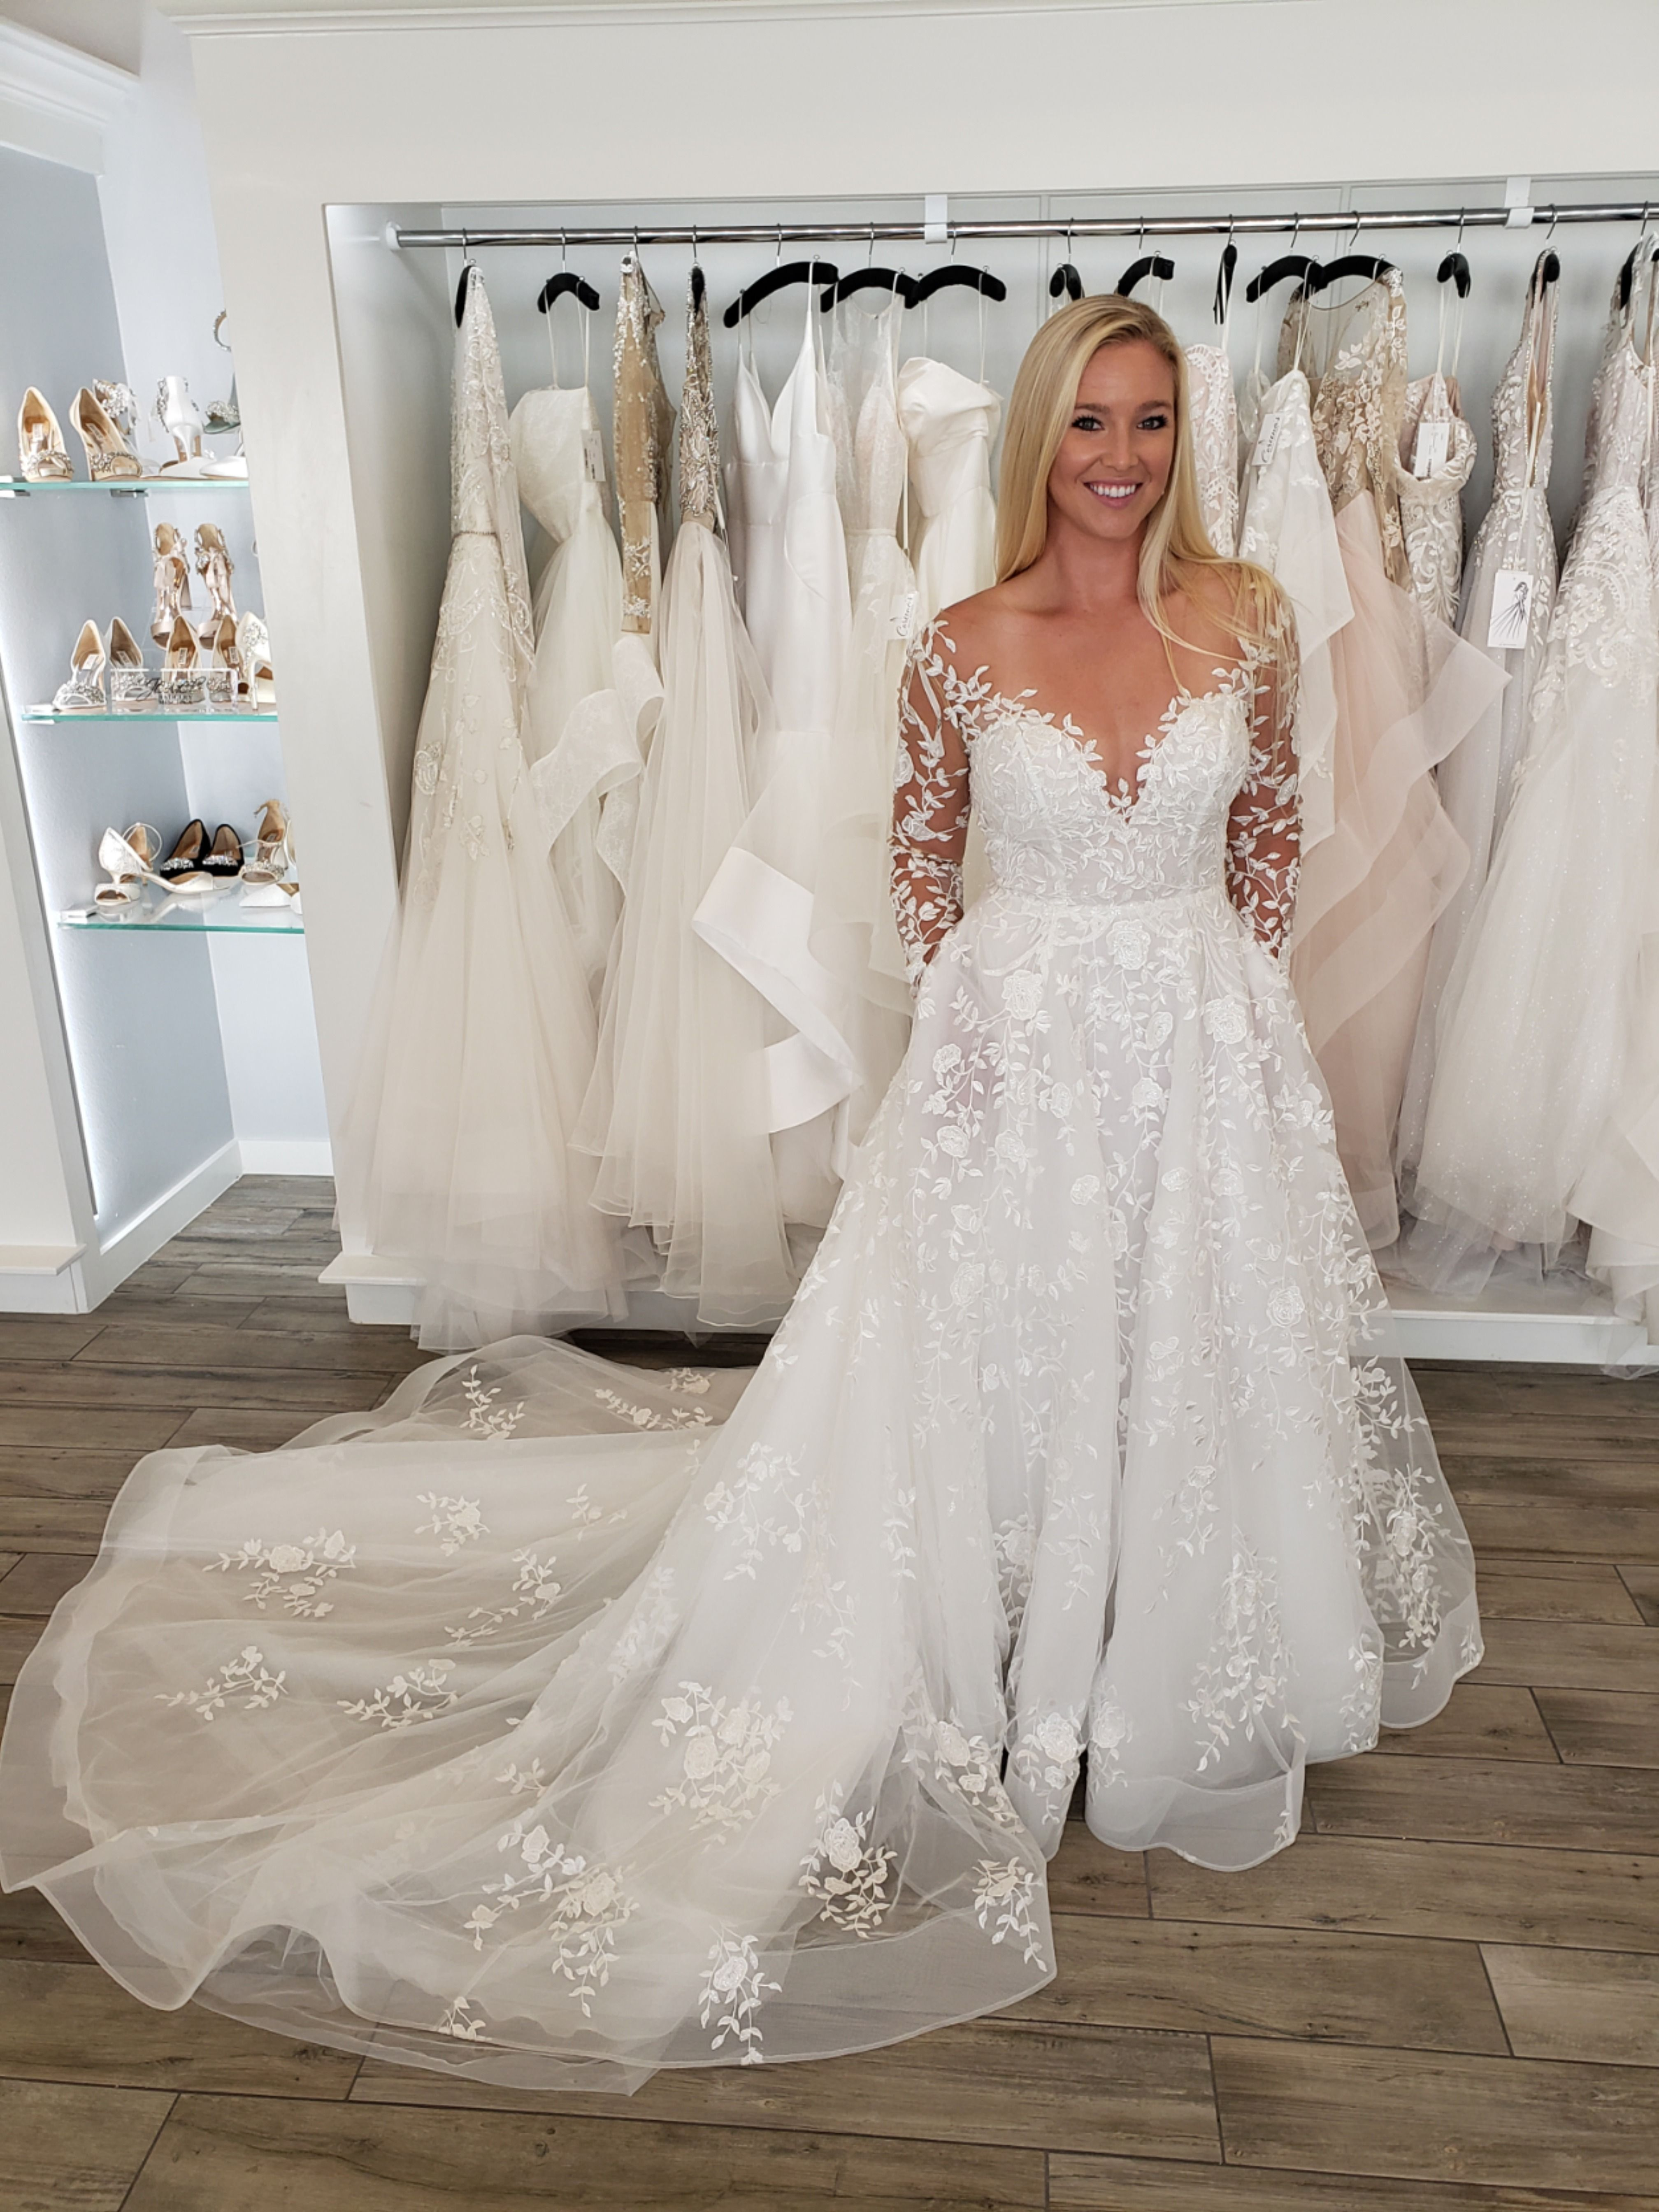 wedding gowns by melinda cheap online